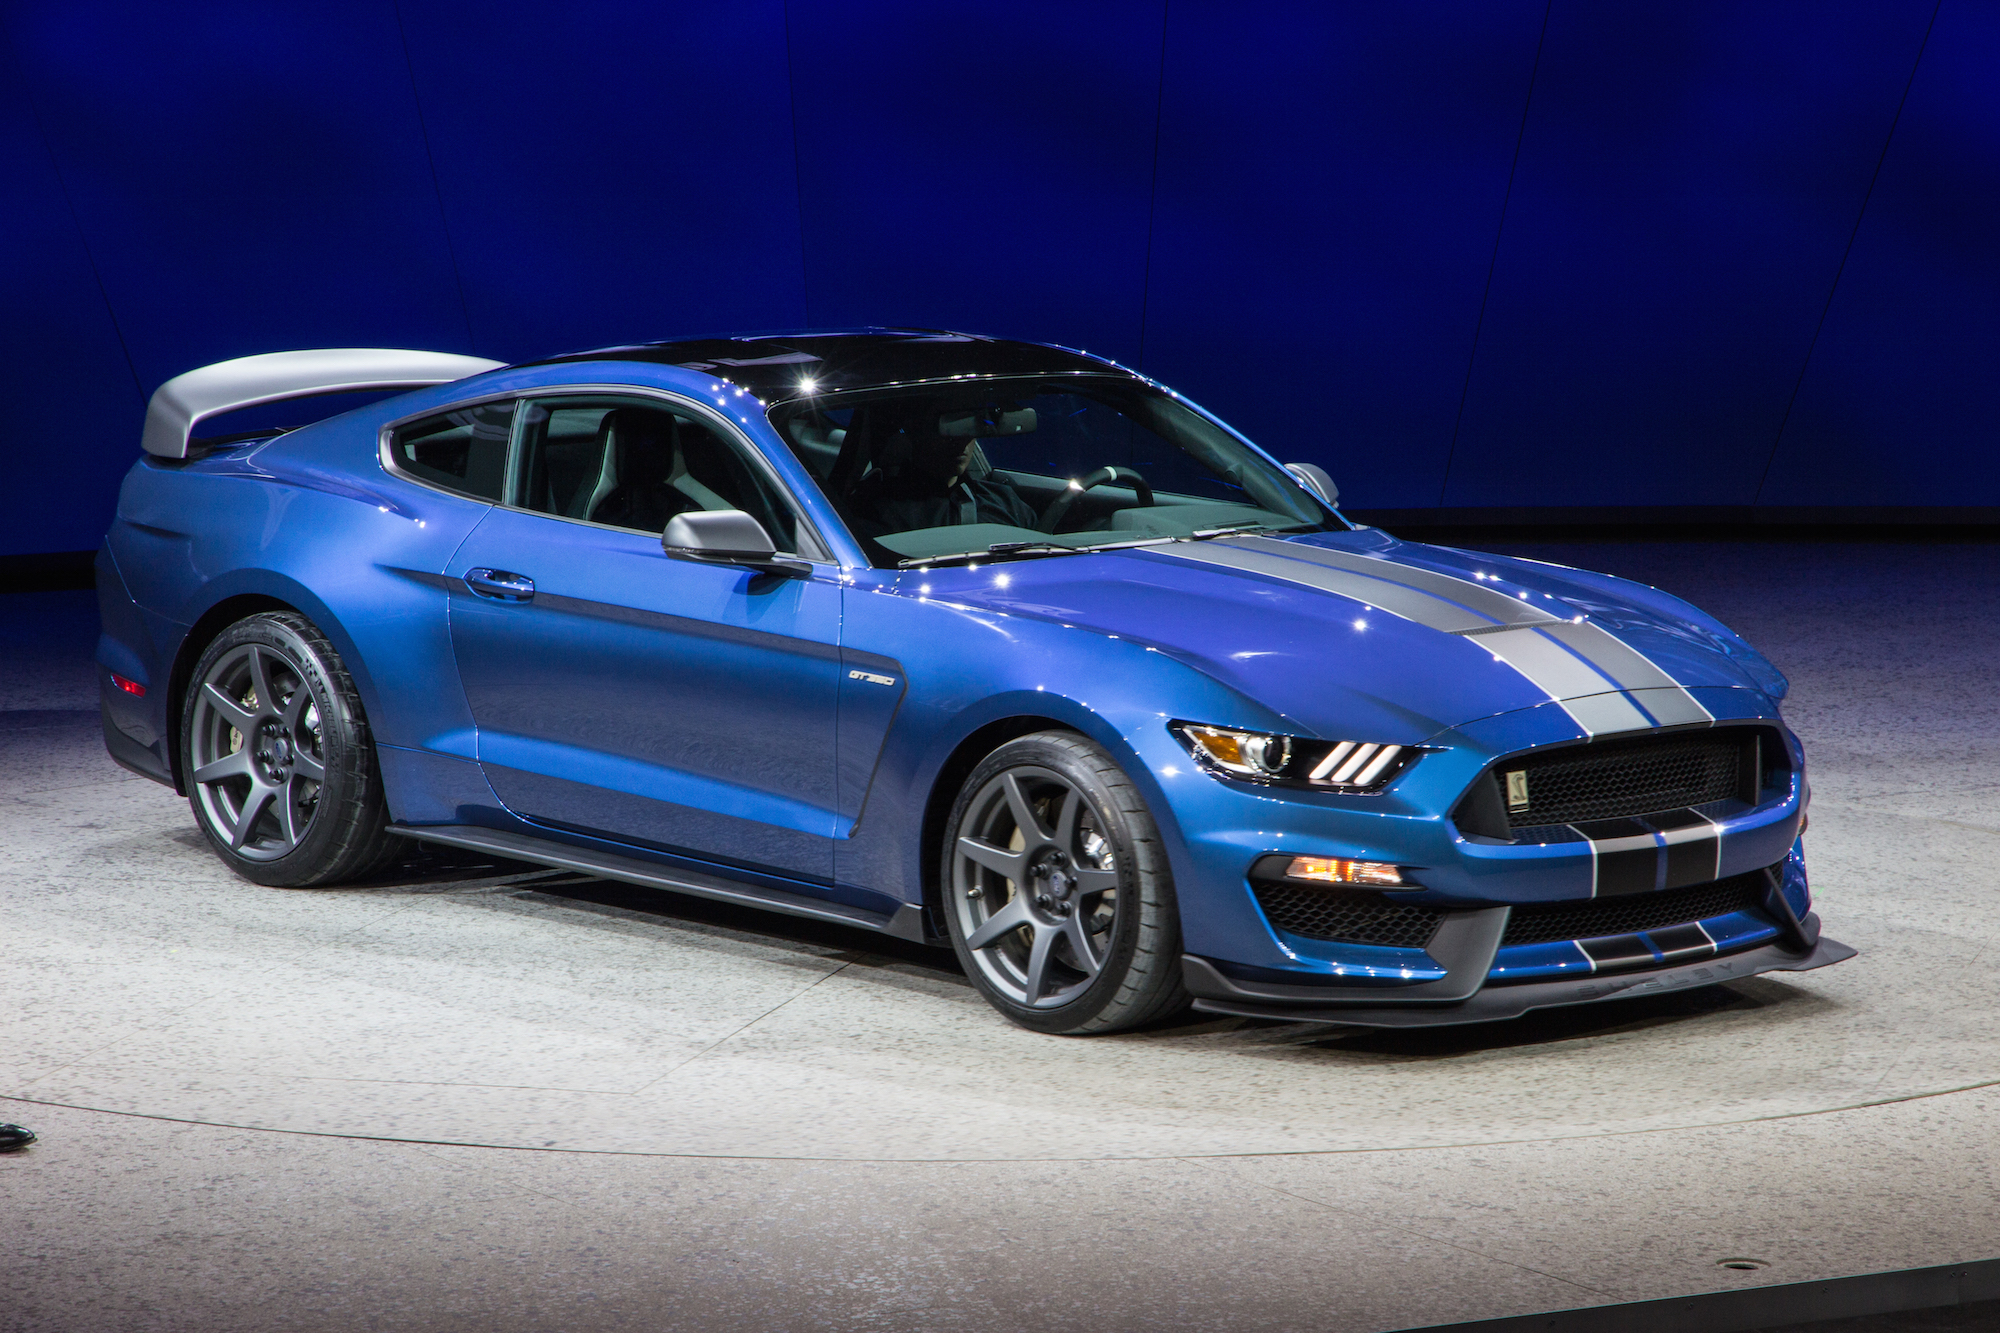 2016 Ford Mustang Shelby Gt350r Is A Track Honed Hooligan